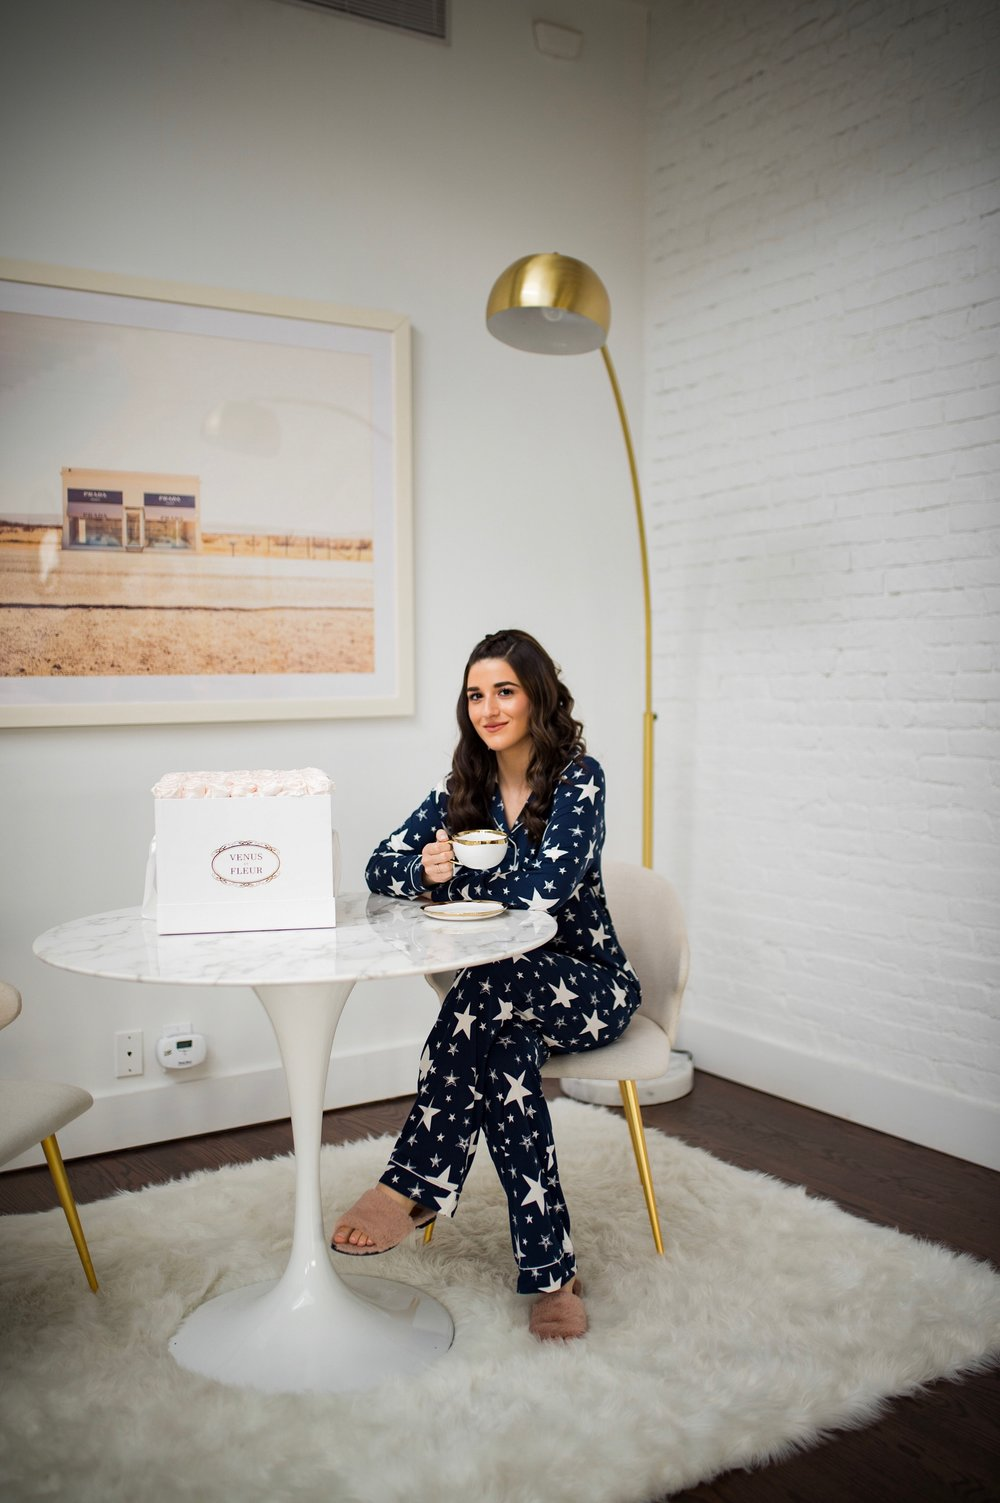 5 Tips For Becoming A Morning Person Navy Star Pajamas Esther Santer Fashion Blog NYC Street Style Blogger Outfit OOTD Trendy Shopping PJs Holiday ASOS Cute Wear Interior Beautiful Home Penthouse Wayfair Circle Mirror Venus Et Fleur Art Marble Table.jpg